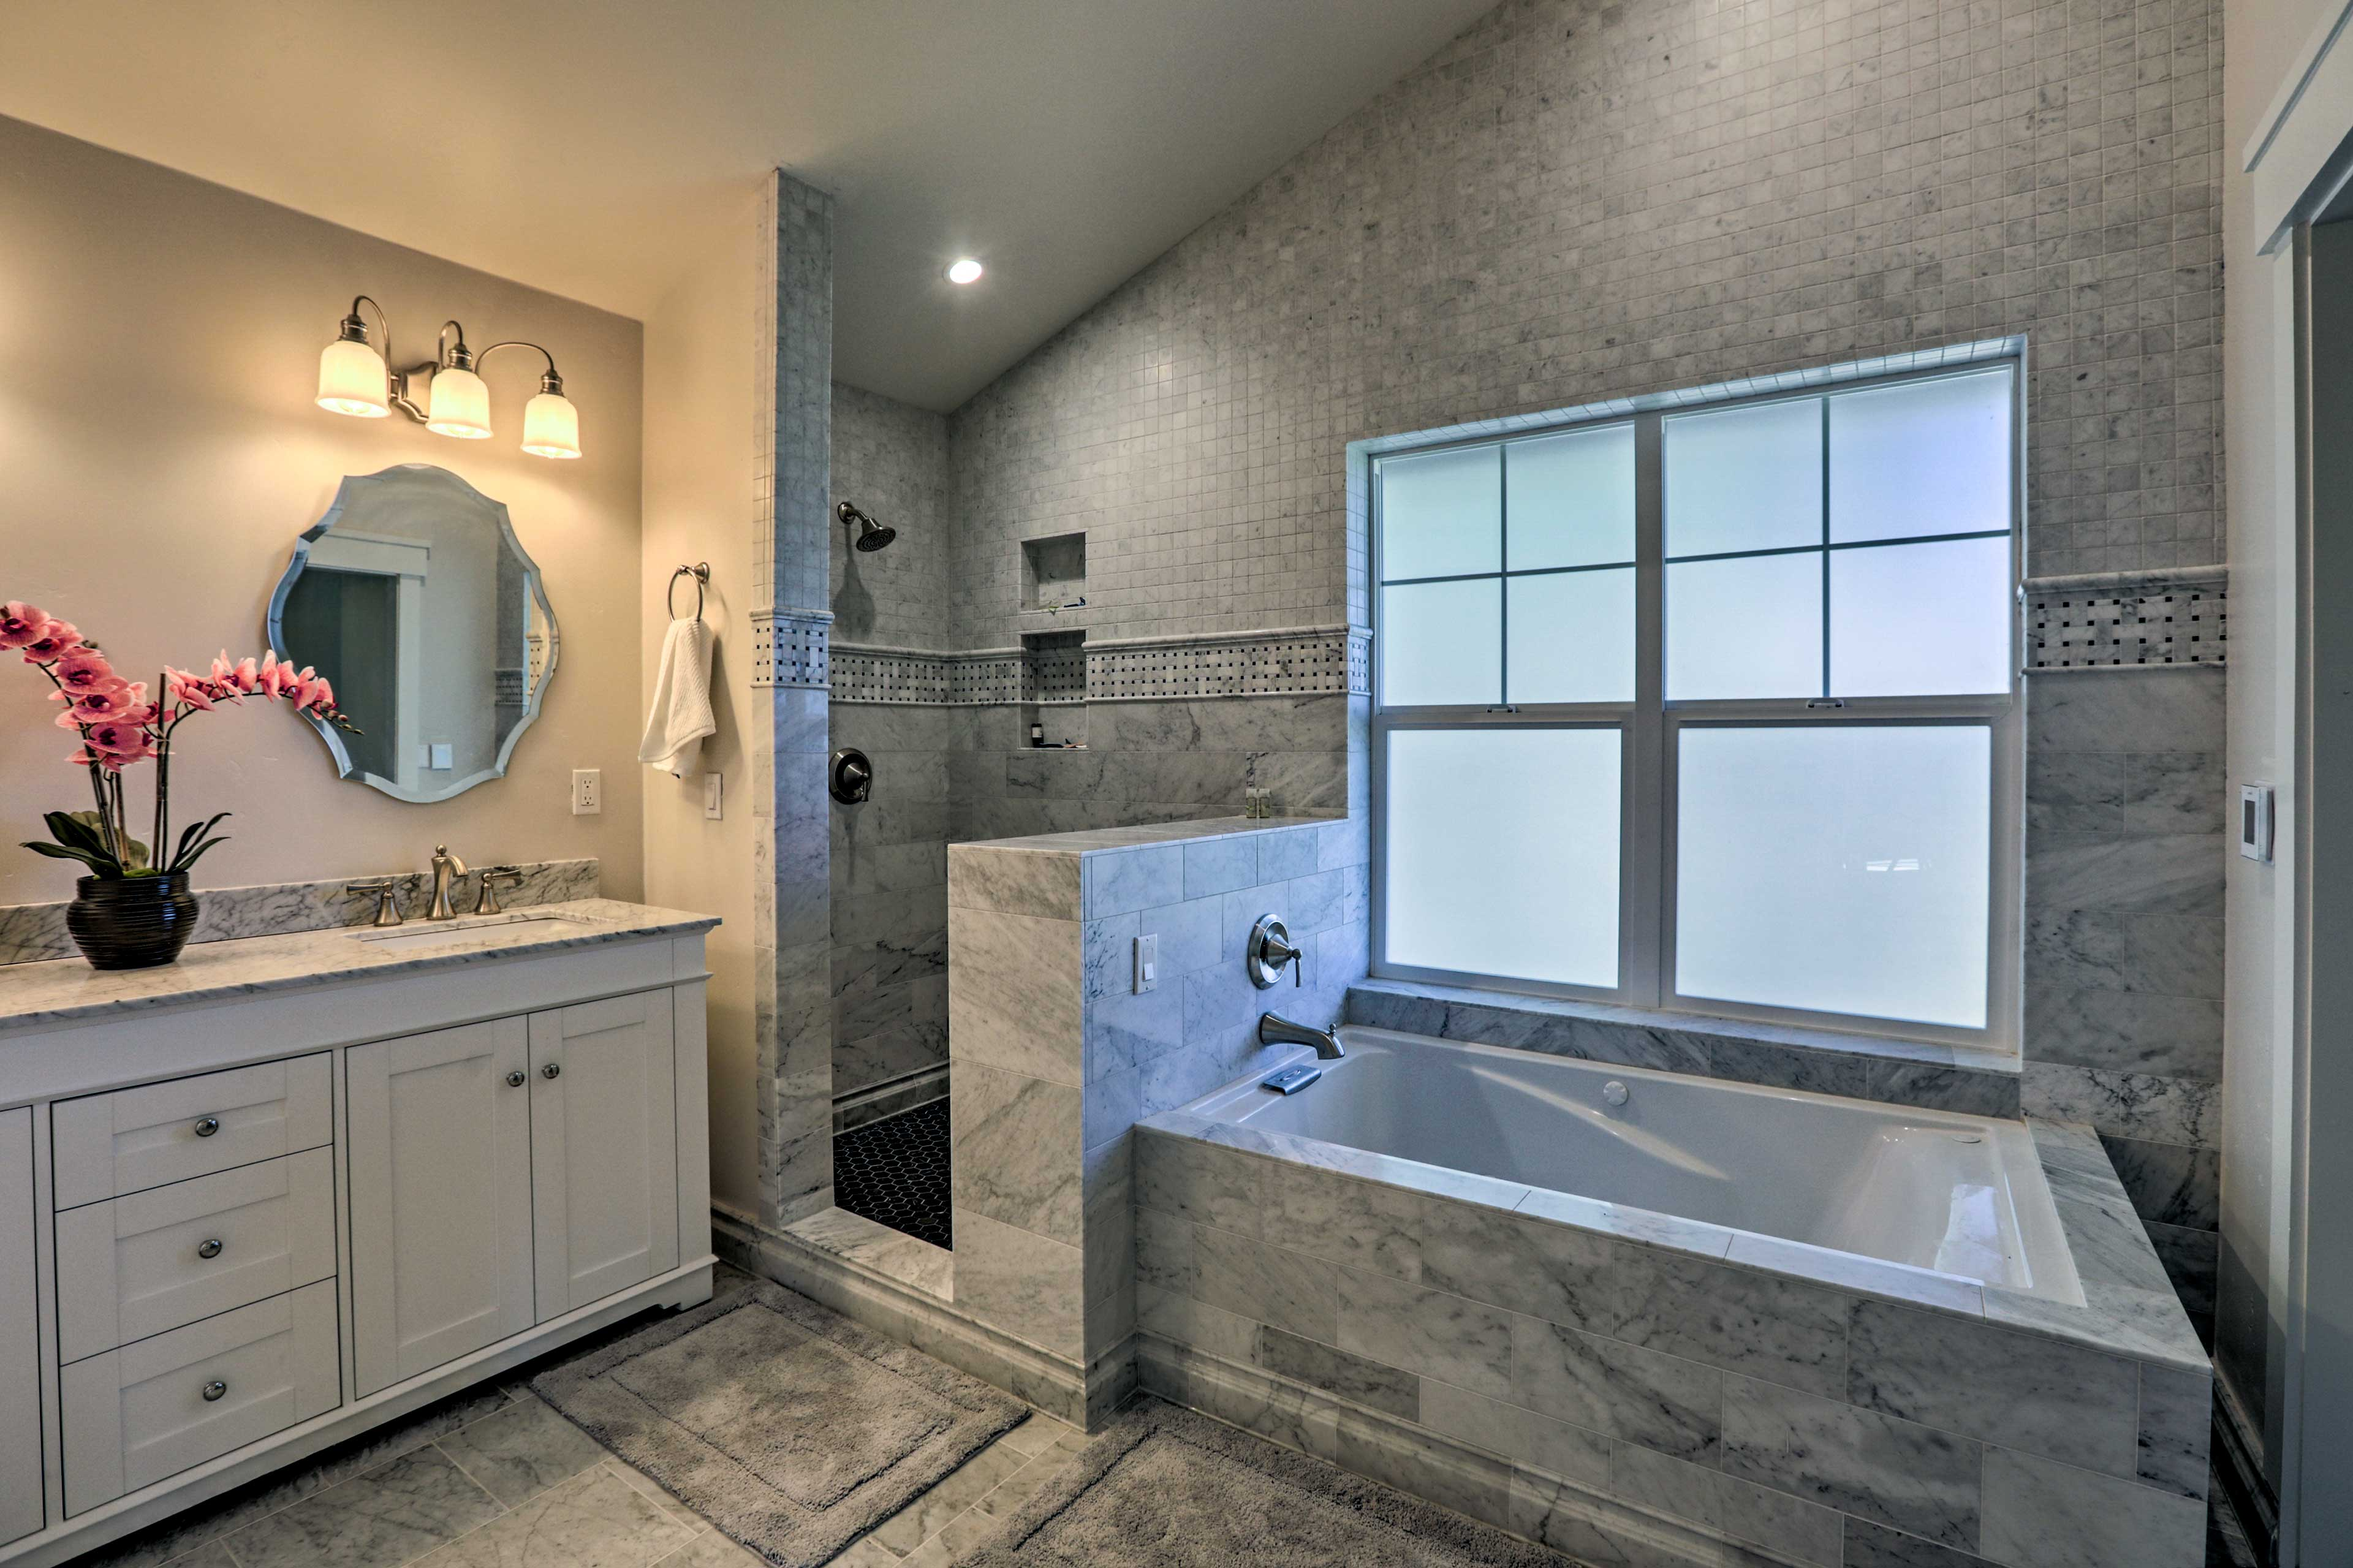 A shower and separate tub furnish the en-suite bathroom.